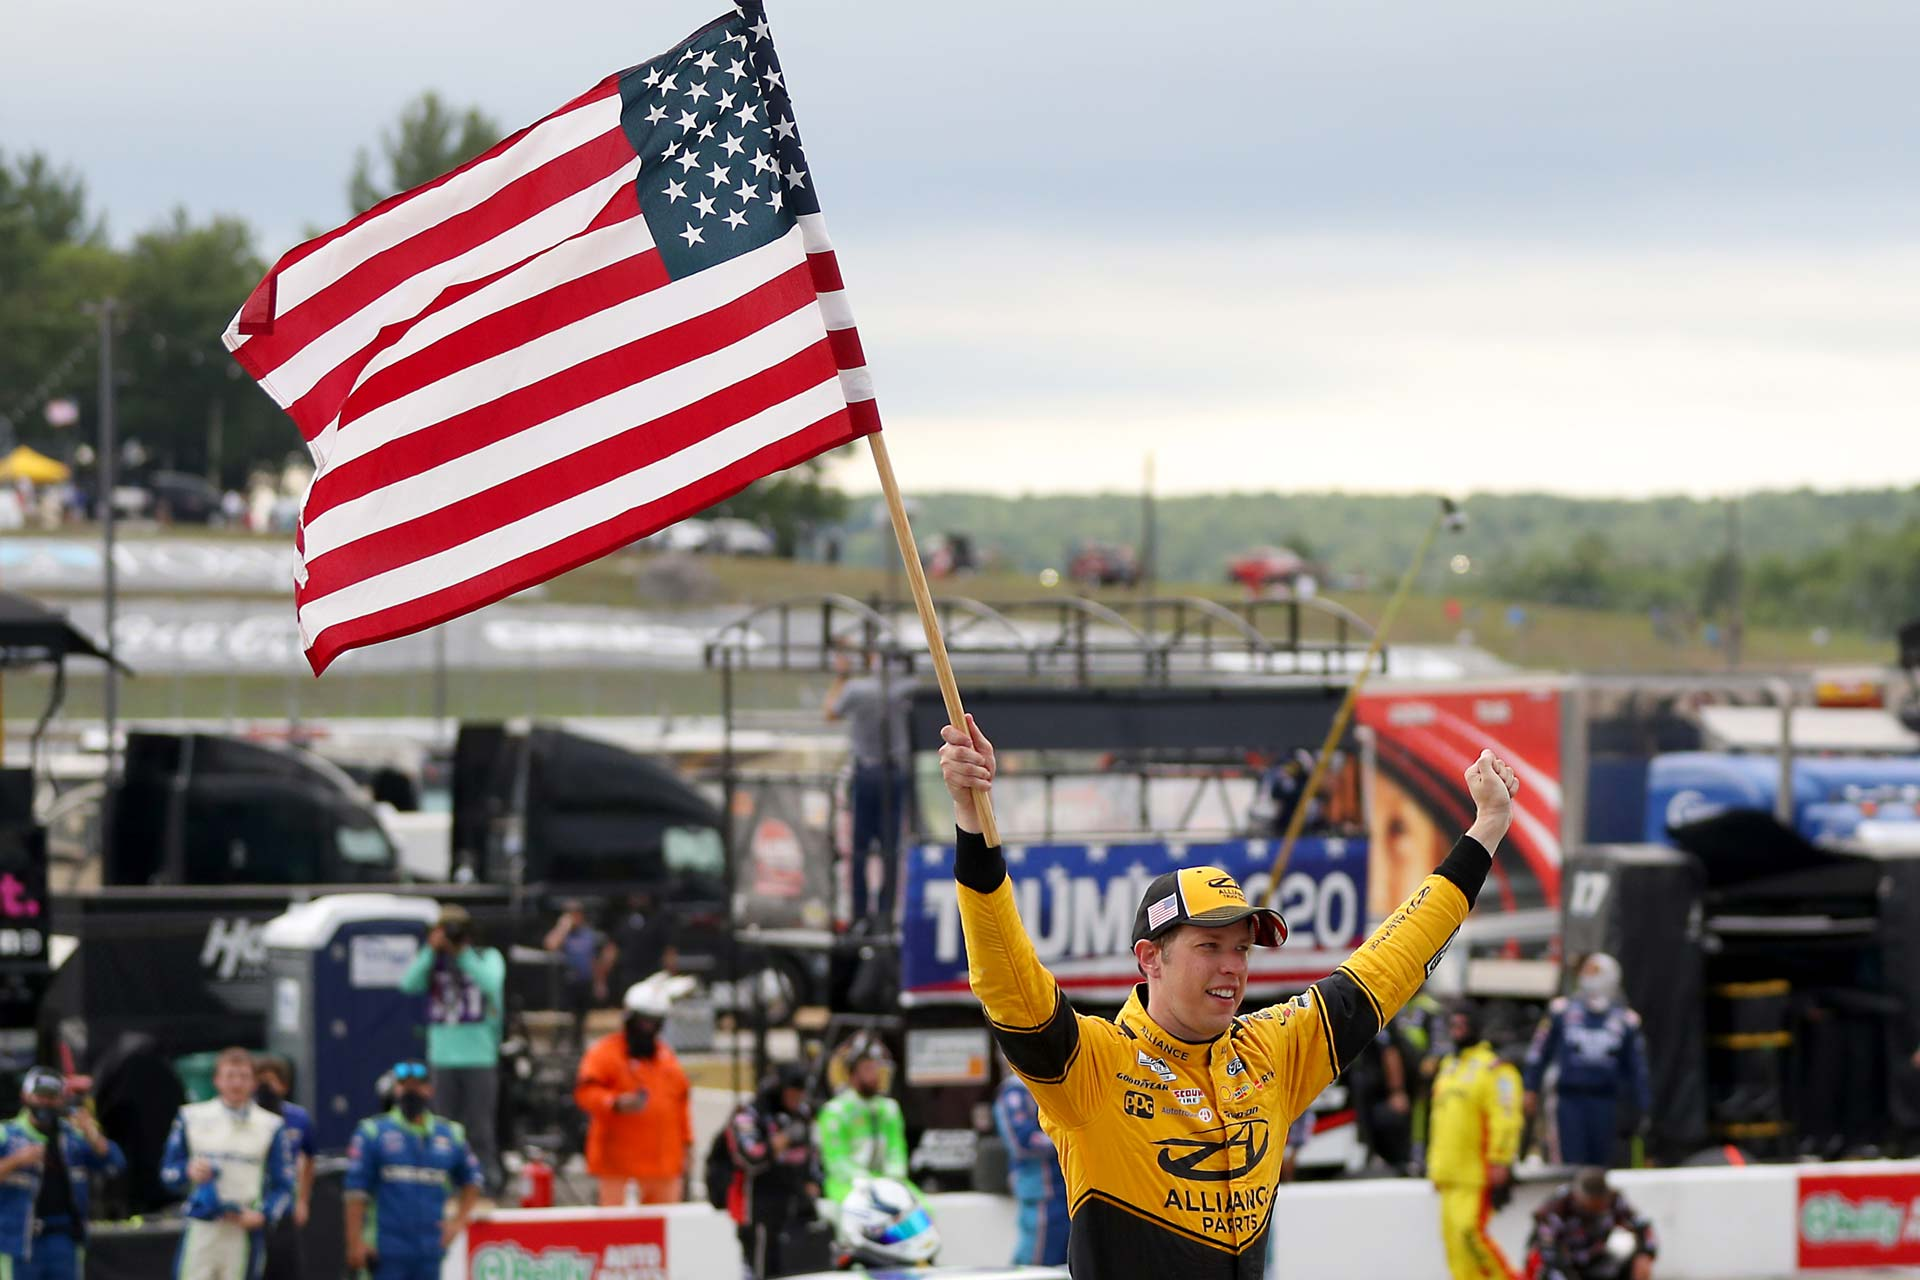 Brad Keselowski celebrates with the fans after winning the Foxwoods Resort Casino 301 in New Hampshire